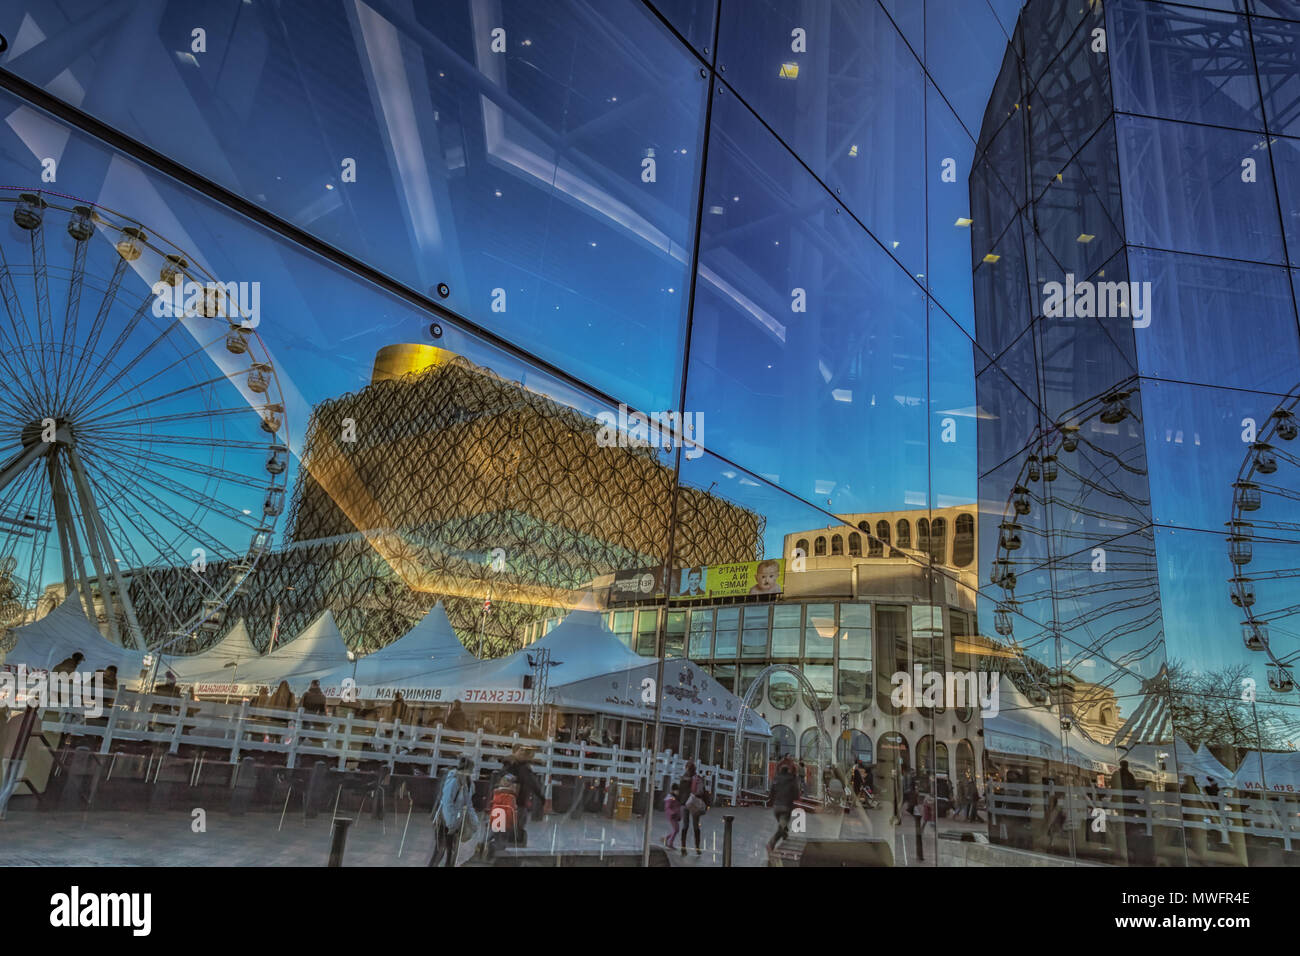 Reflection of Centenary Square in the Symphony Hall building in Birmingham - Stock Image